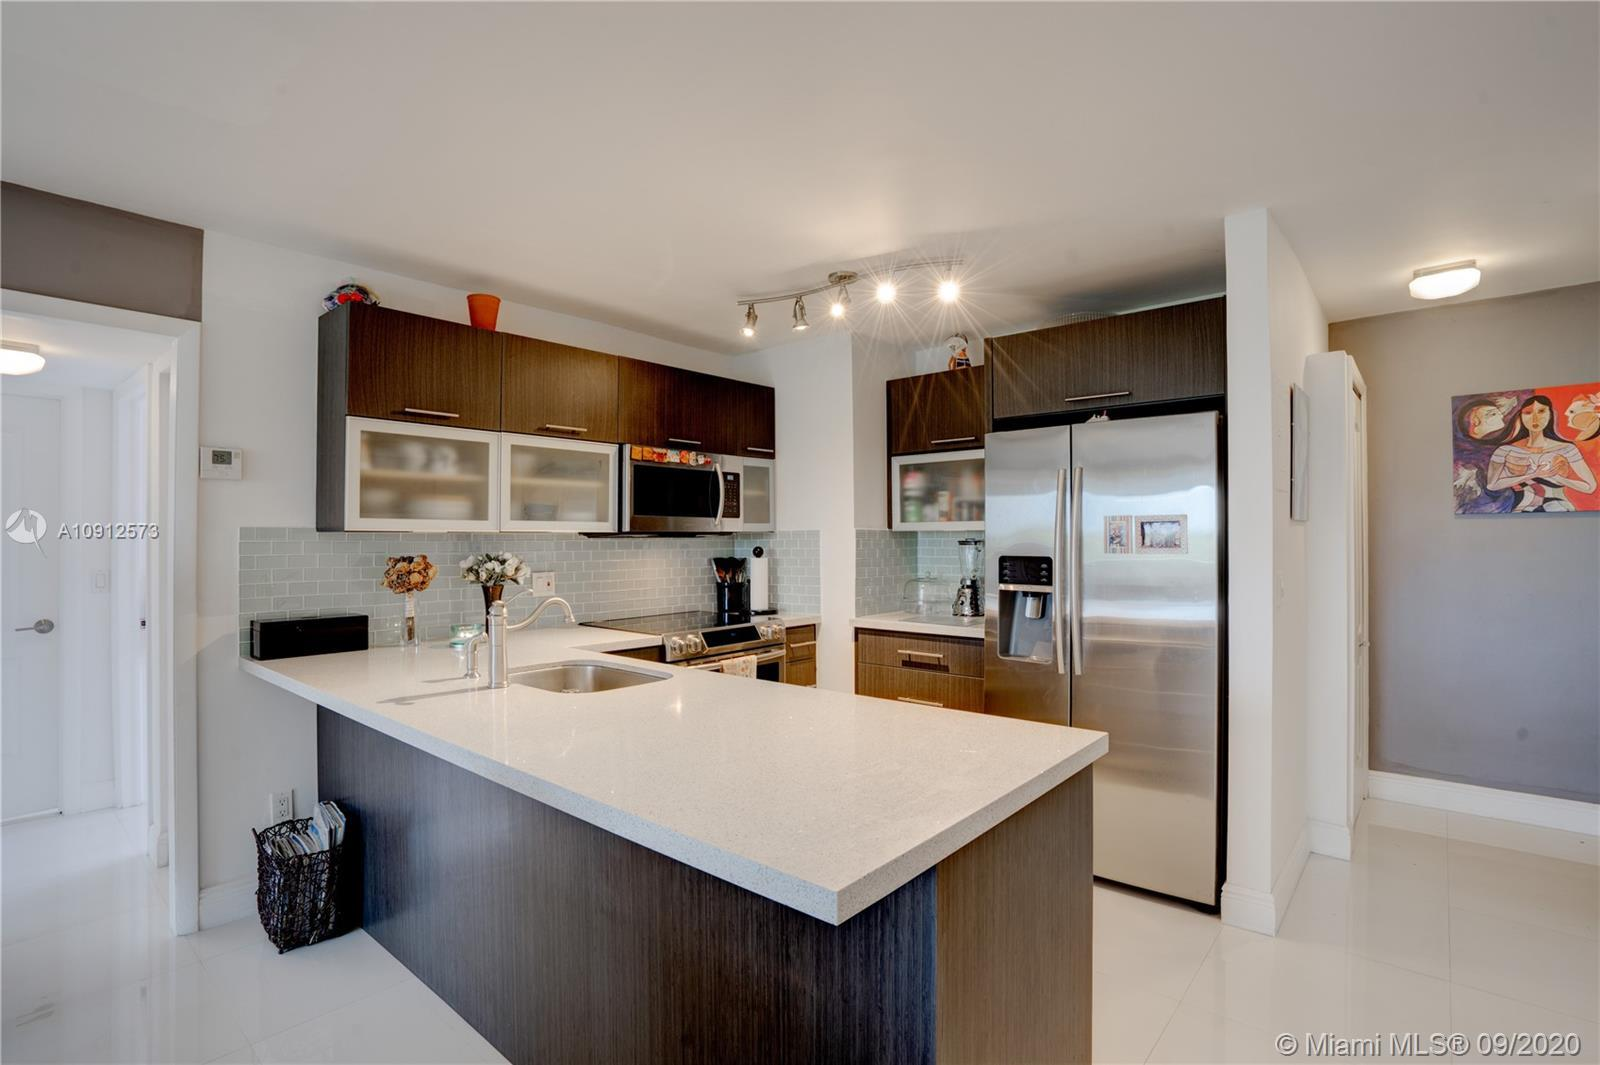 Beautiful renovated 2/2 in the heart of The Roads! This corner unit is a hidden gem, centrally loca